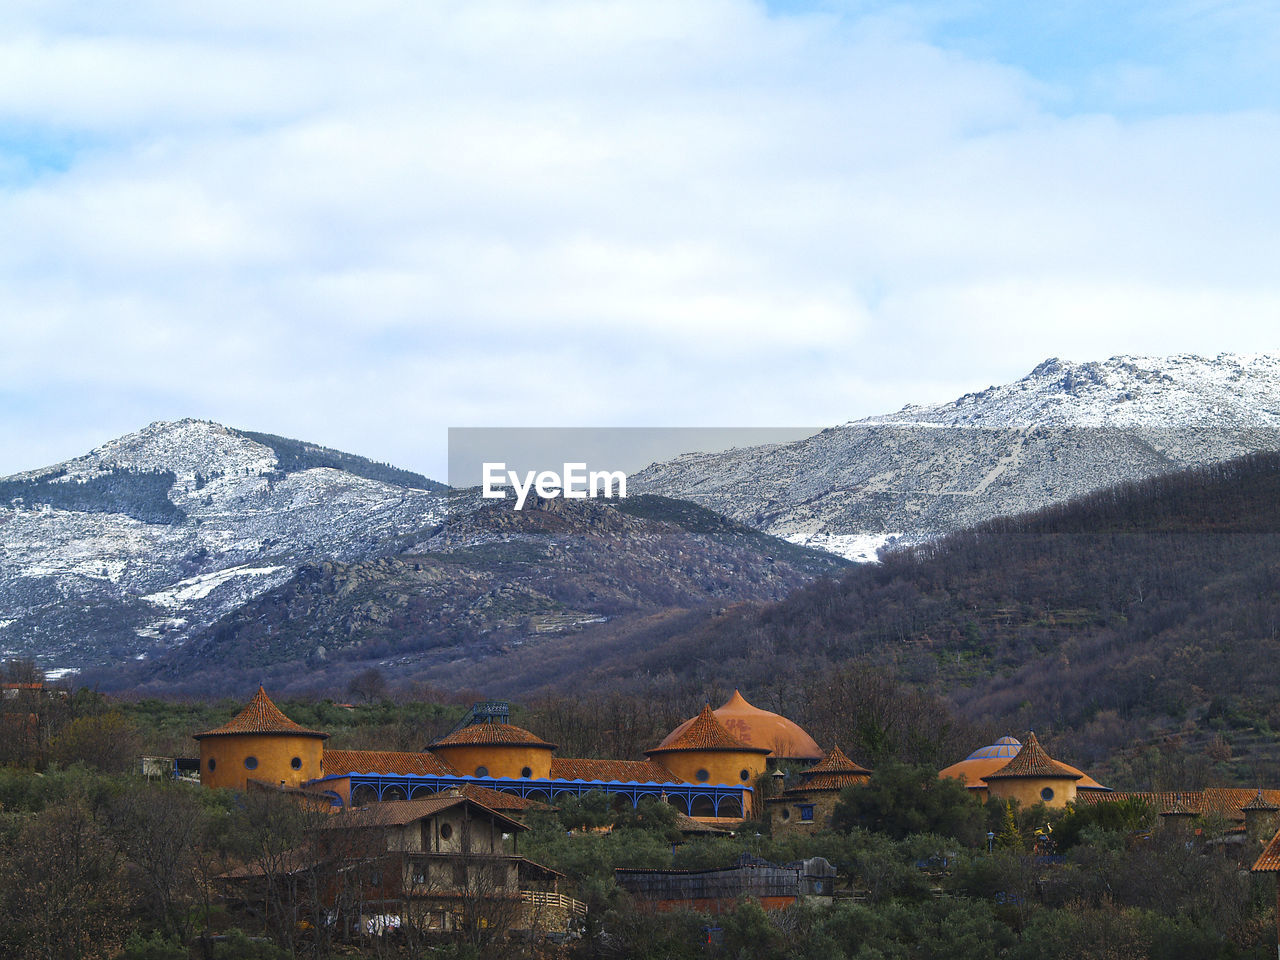 mountain, beauty in nature, mountain range, nature, sky, scenics, outdoors, day, built structure, snow, tranquility, house, building exterior, no people, architecture, landscape, cloud - sky, tree, range